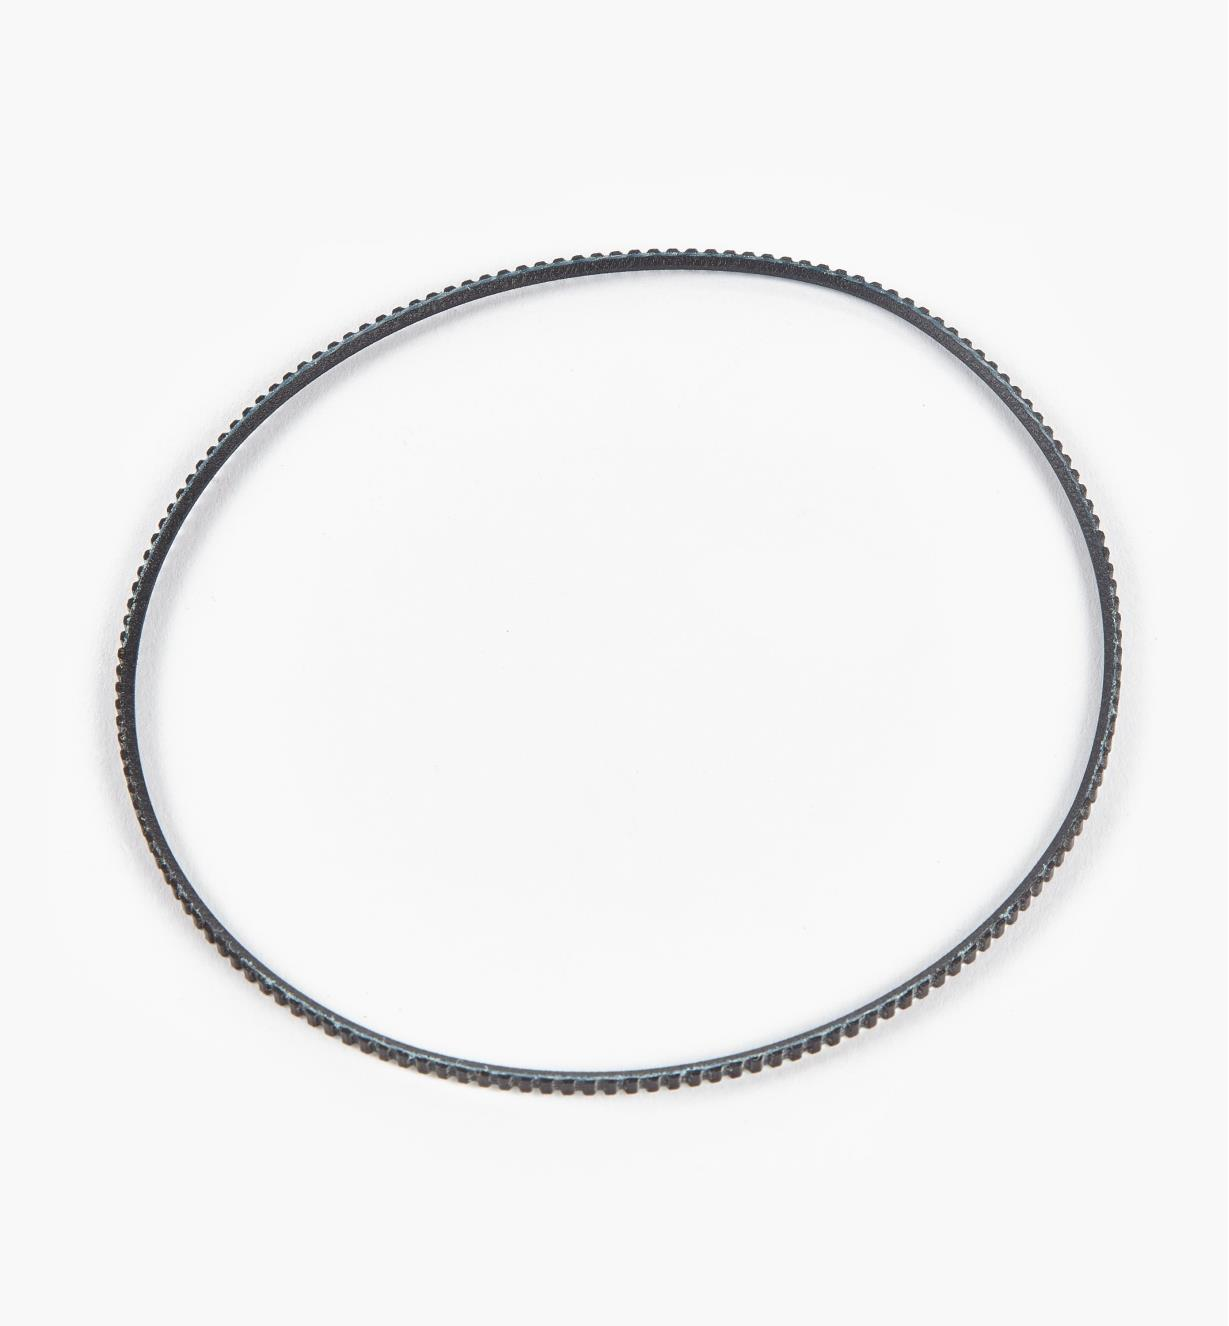 05M3102 - Replacement V-Belt, For serial number 3072 or lower